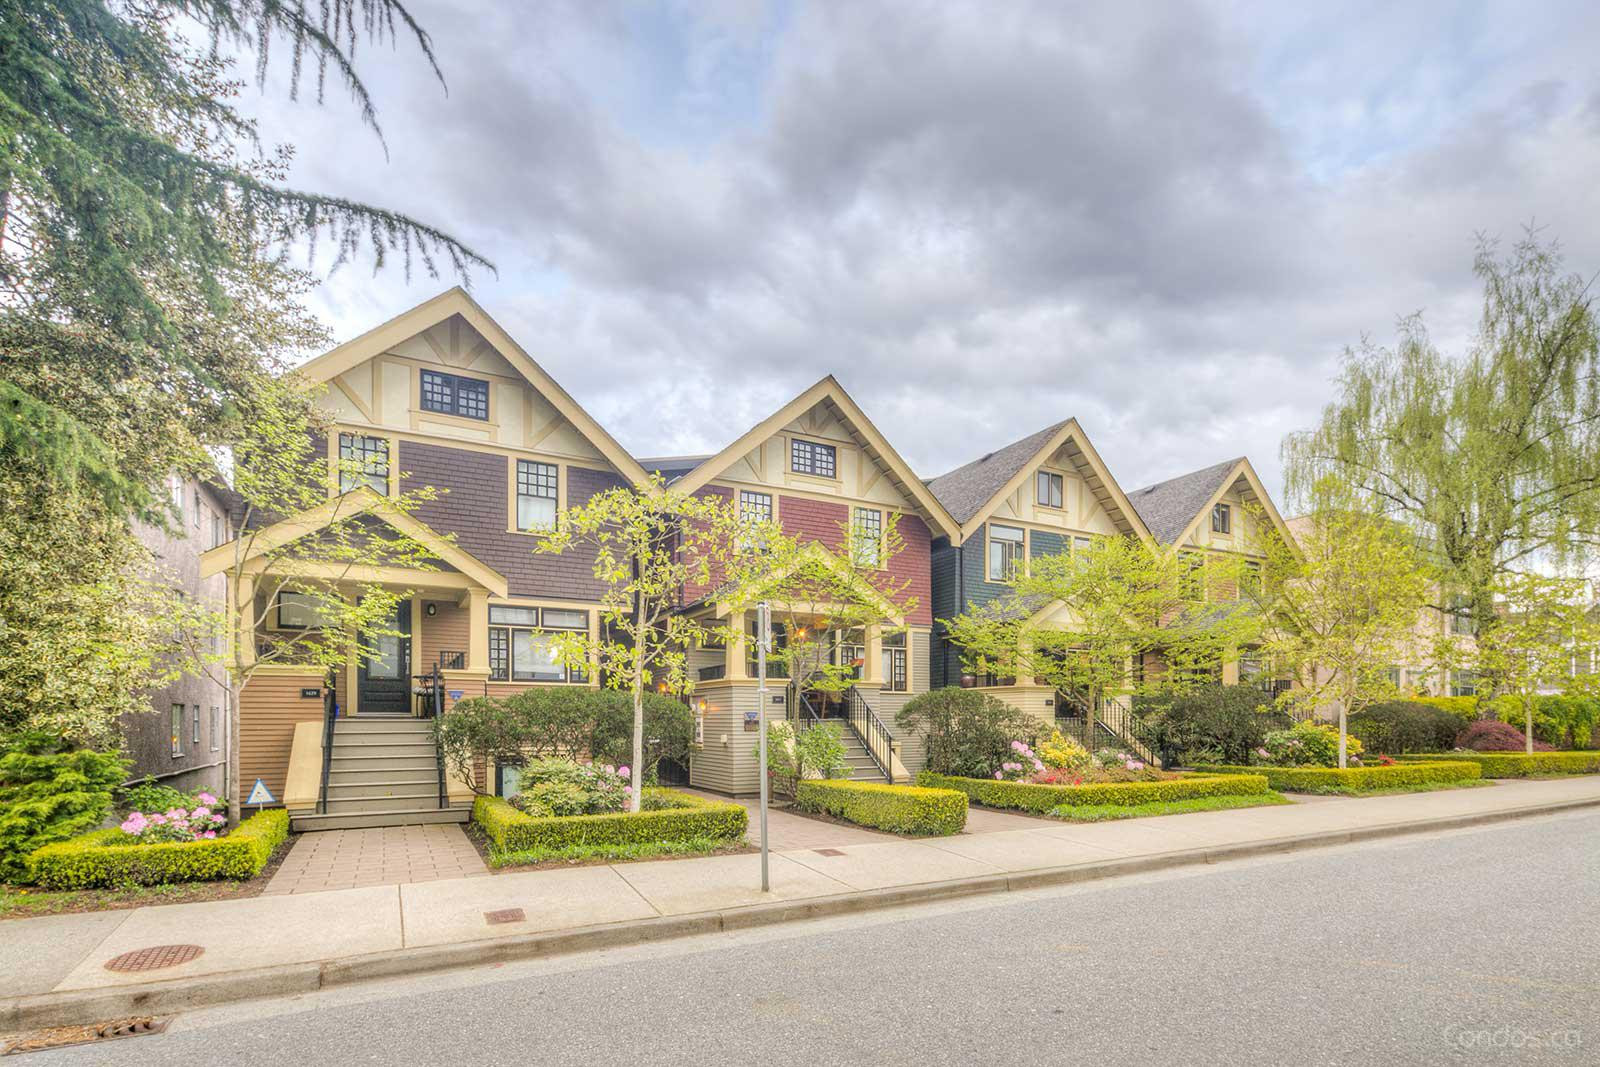 The Baker Houses at 1413 W 11th Ave, Vancouver 0